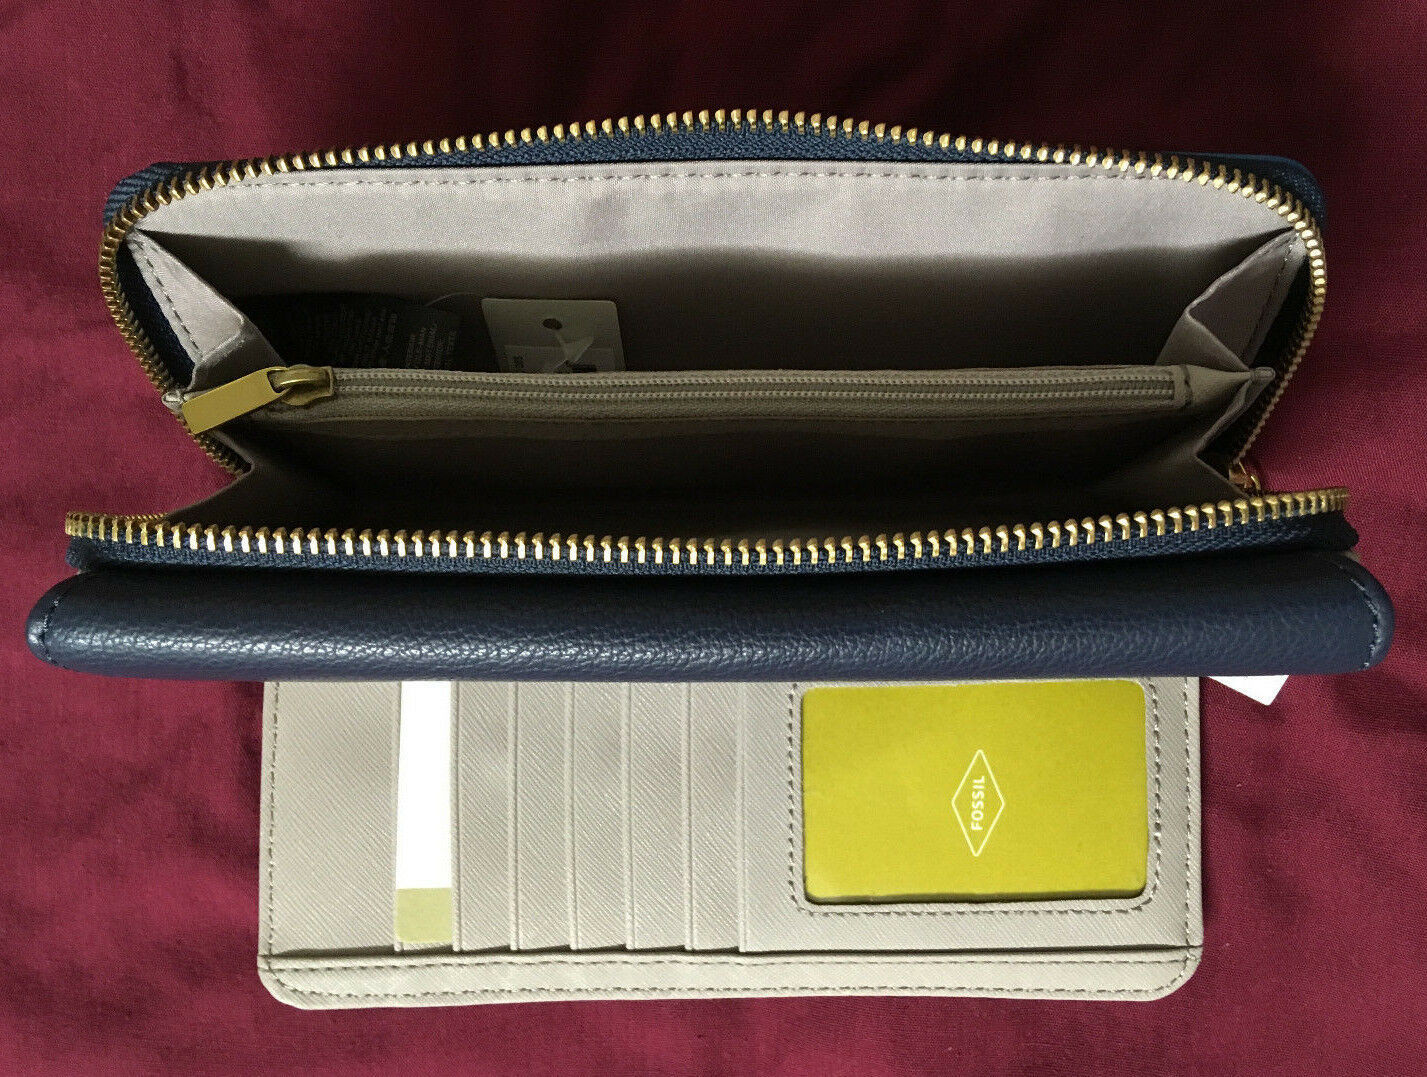 NWT Fossil Jori Blue Navy Leather Wallet Flap Clutch + 25% off your next order* image 5